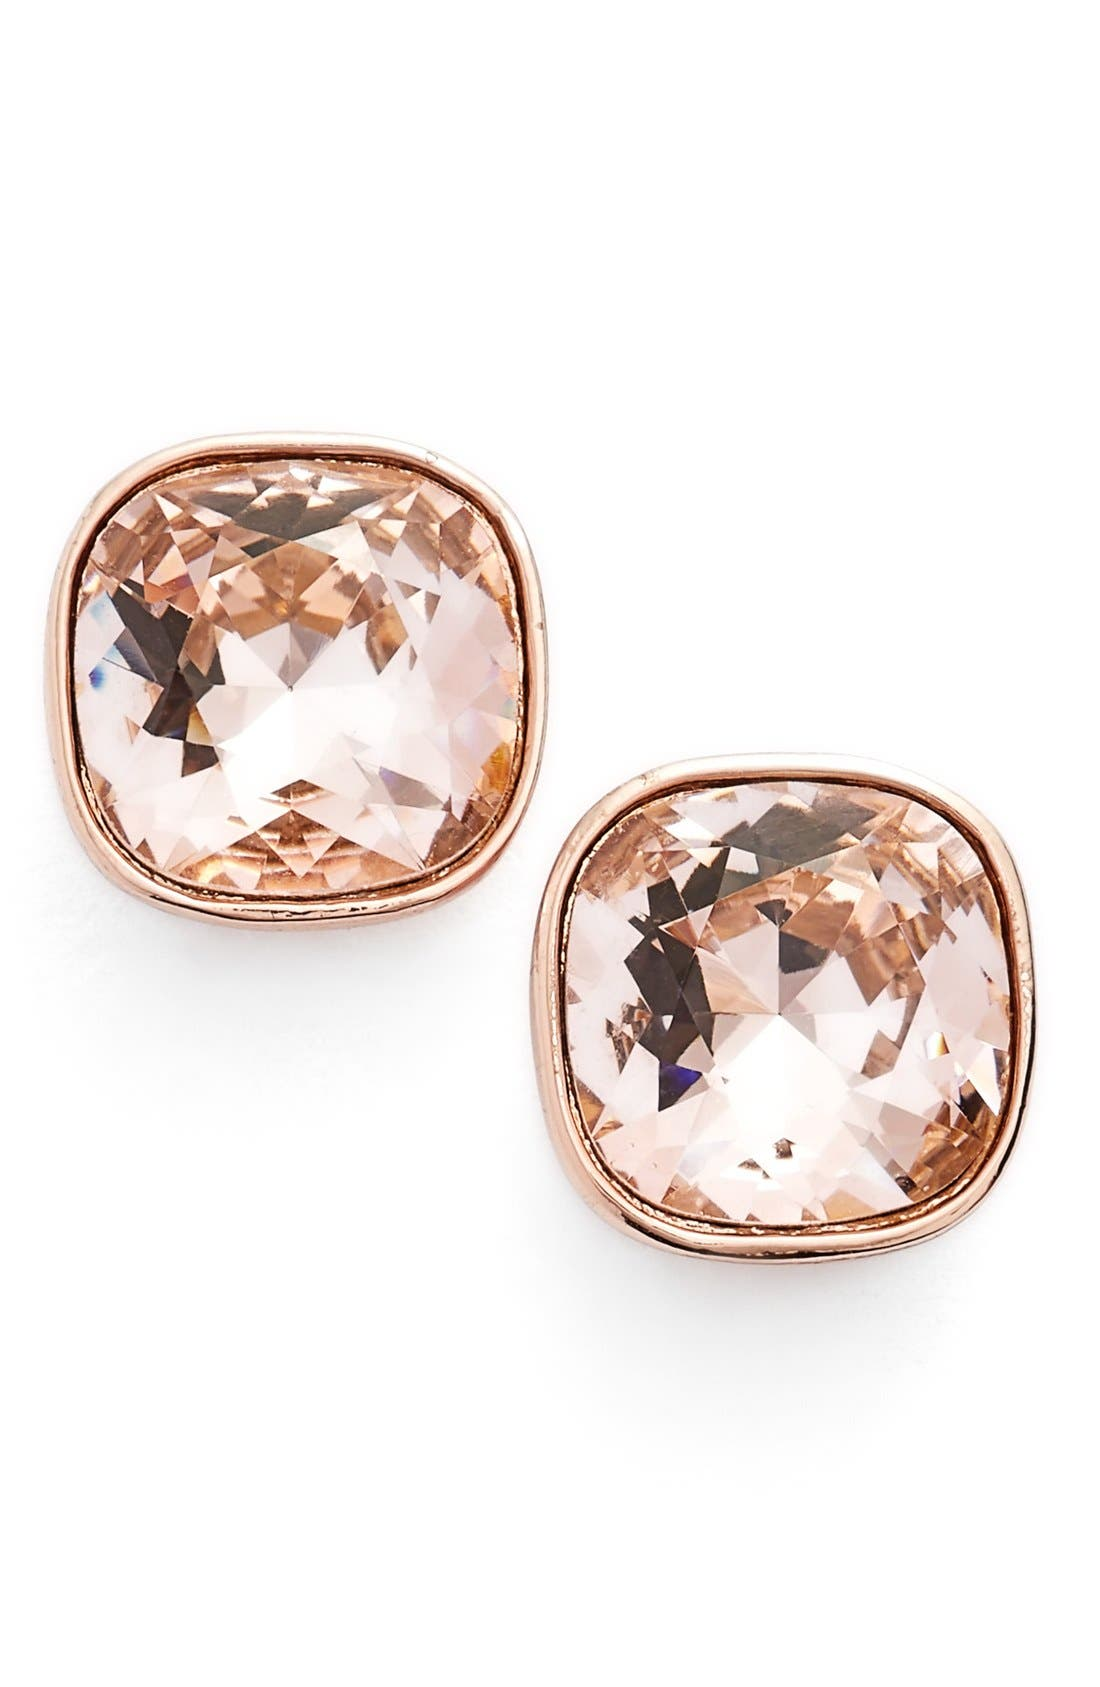 Main Image - Givenchy Crystal Stud Earrings